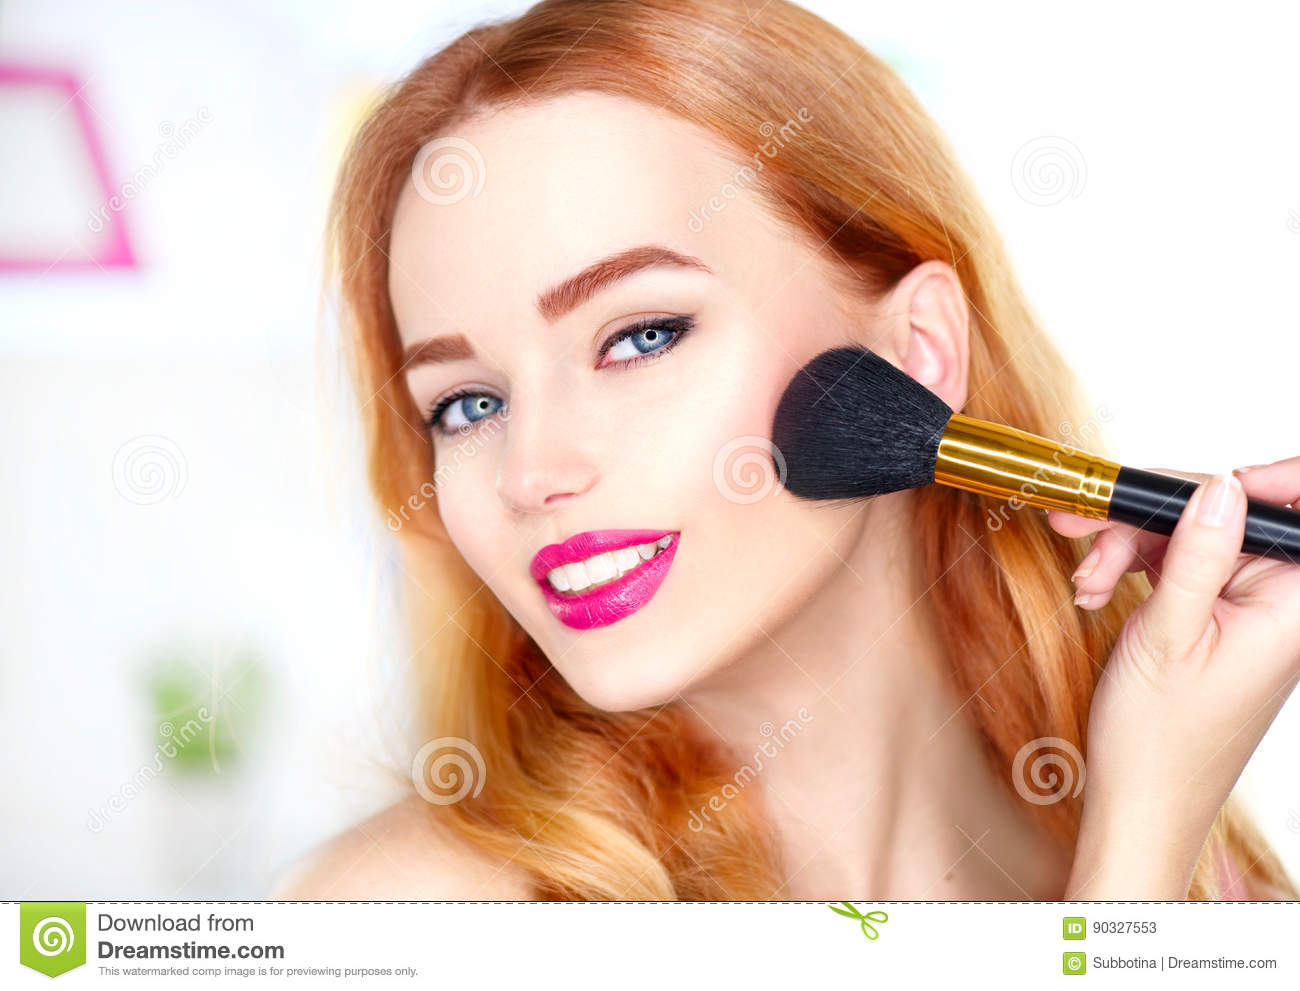 Beauty woman applying makeup. Beautiful girl looking in the mirror and applying cosmetic